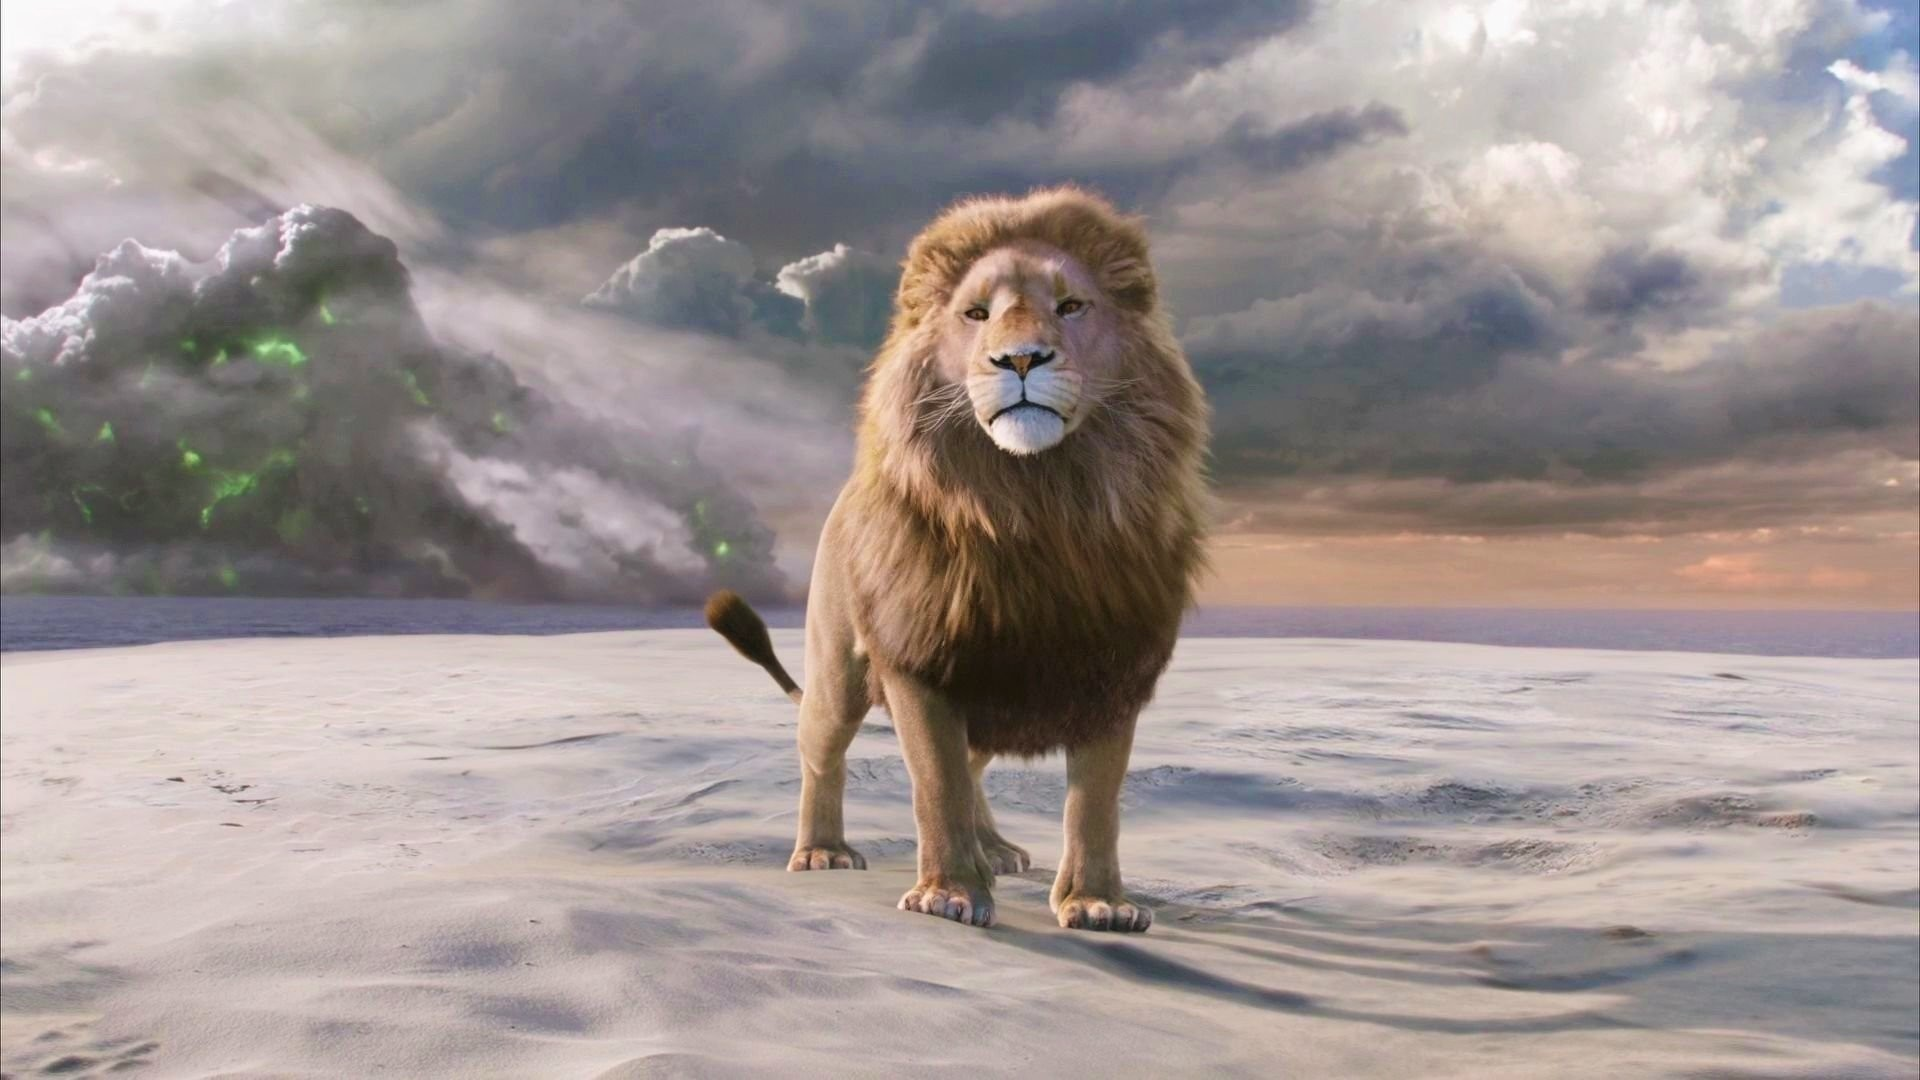 Res: 1920x1080, Movie - The Chronicles of Narnia: The Lion, the Witch and the Wardrobe Movie